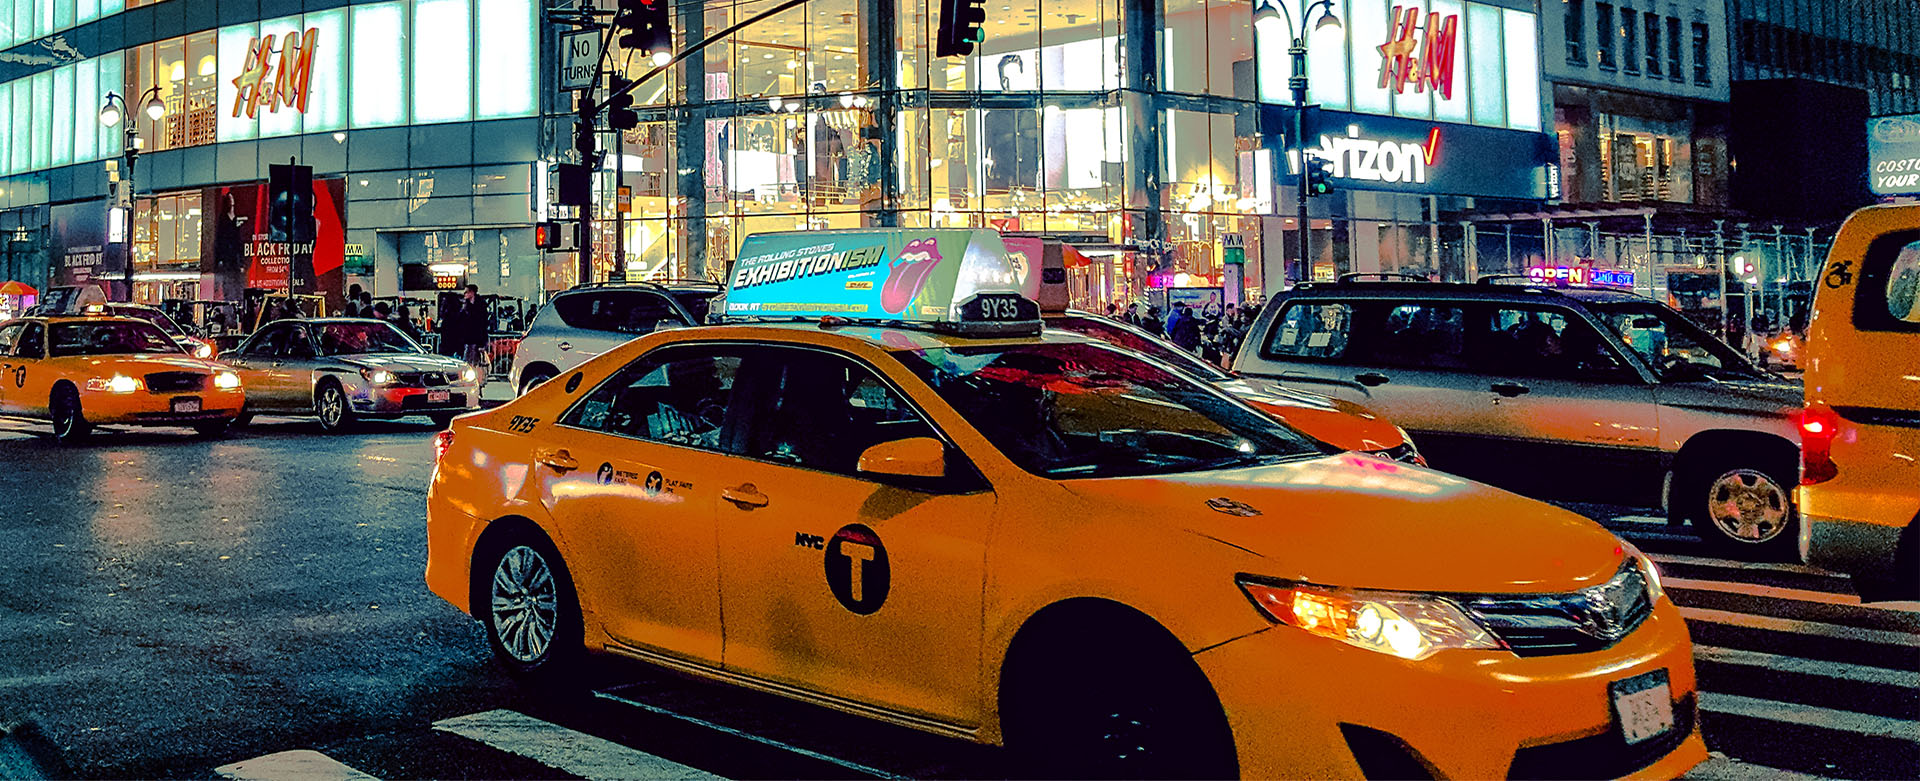 Why Business Travelers Prefer Uber TLC Rental Over Taxis